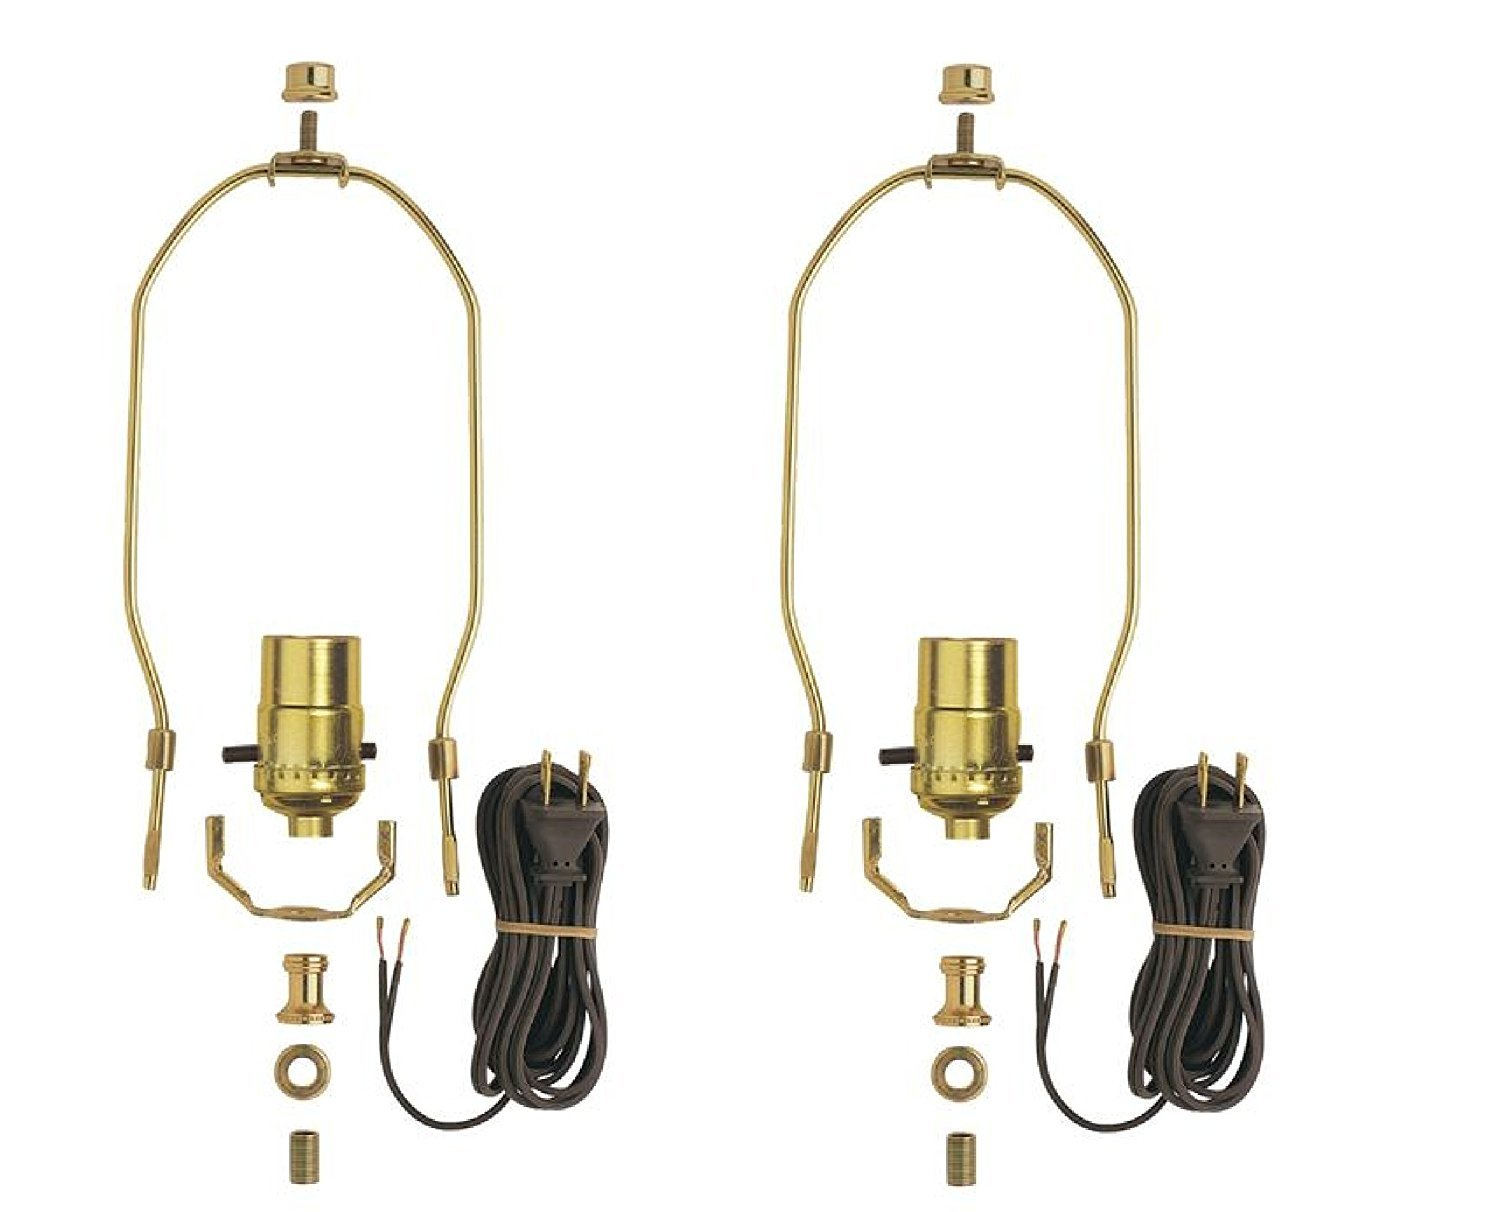 Westinghouse 70269 00 Angelo Brothers Make A Lamp Kit Finials Rewiring Two Socket